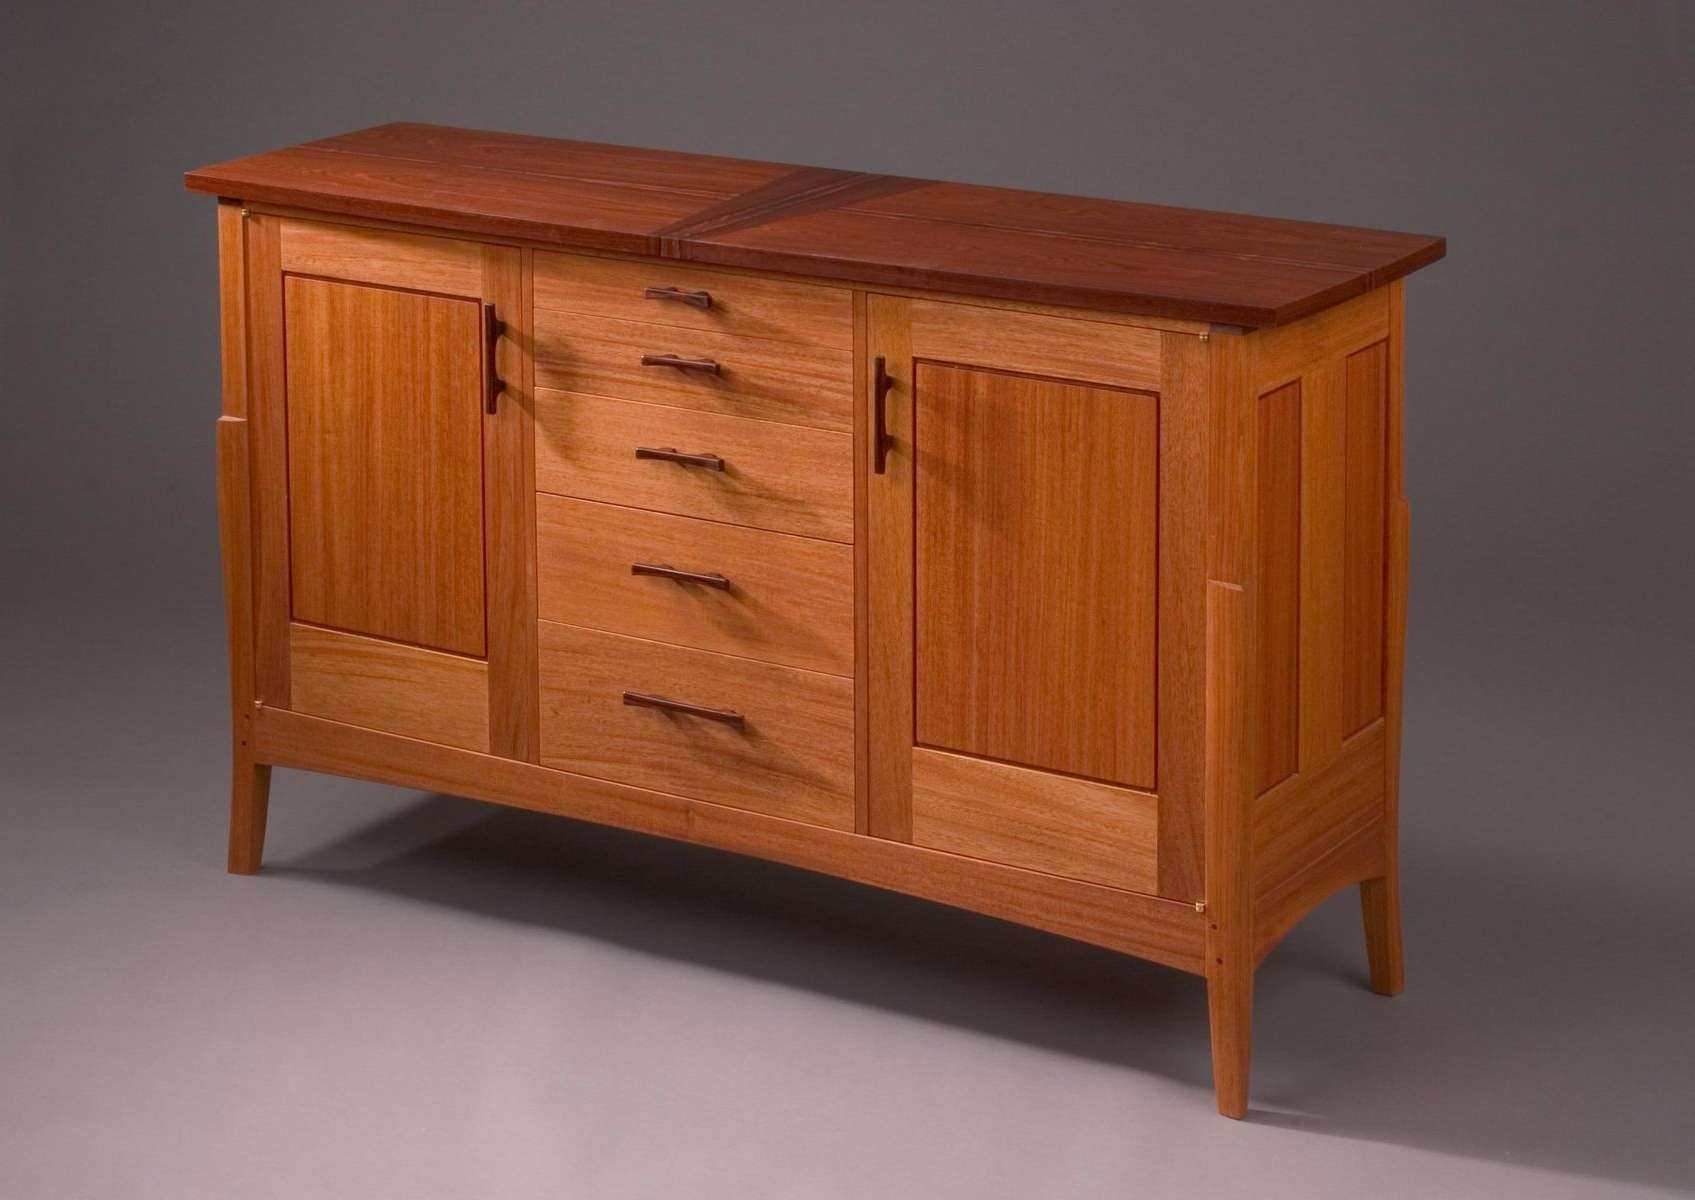 Hand Crafted Mahogany Musician's Sideboardpat Megowan Designer Within Mission Style Sideboards (View 15 of 20)